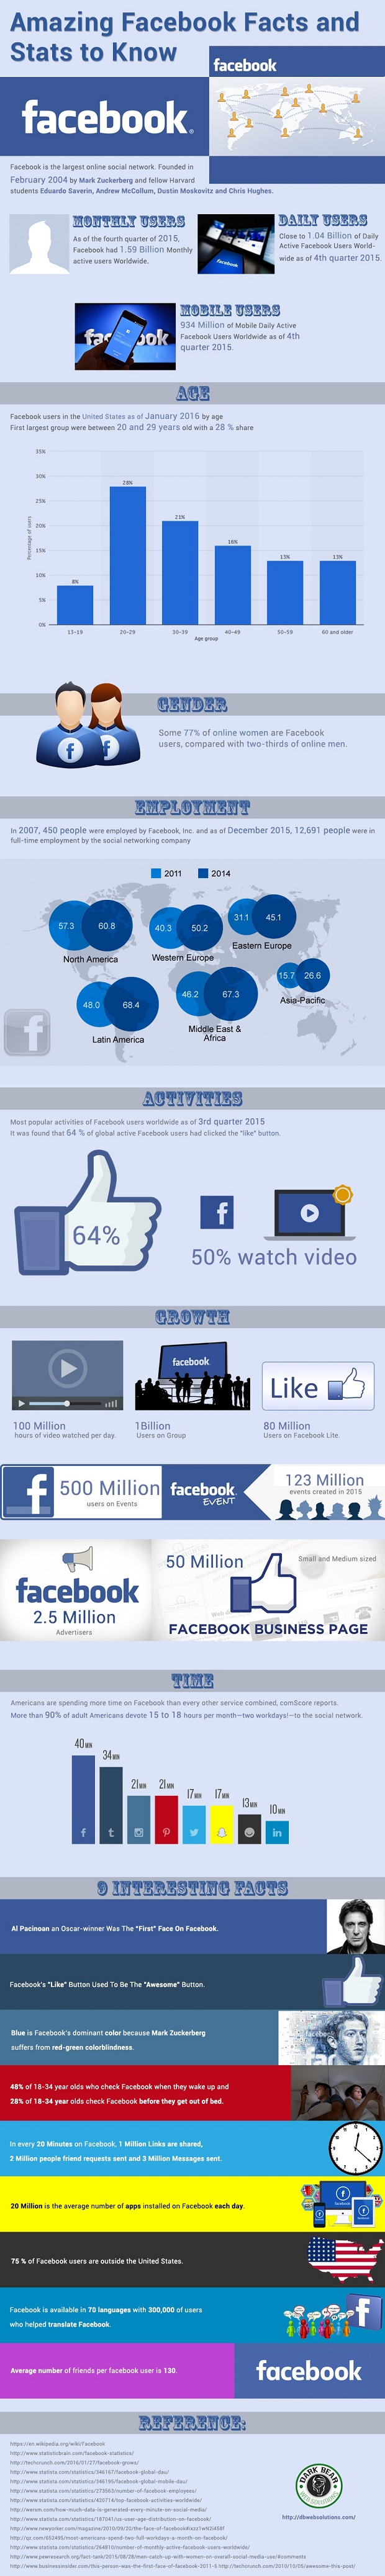 The most amazing facts about Facebook [INFOGRAPHIC] - Digital